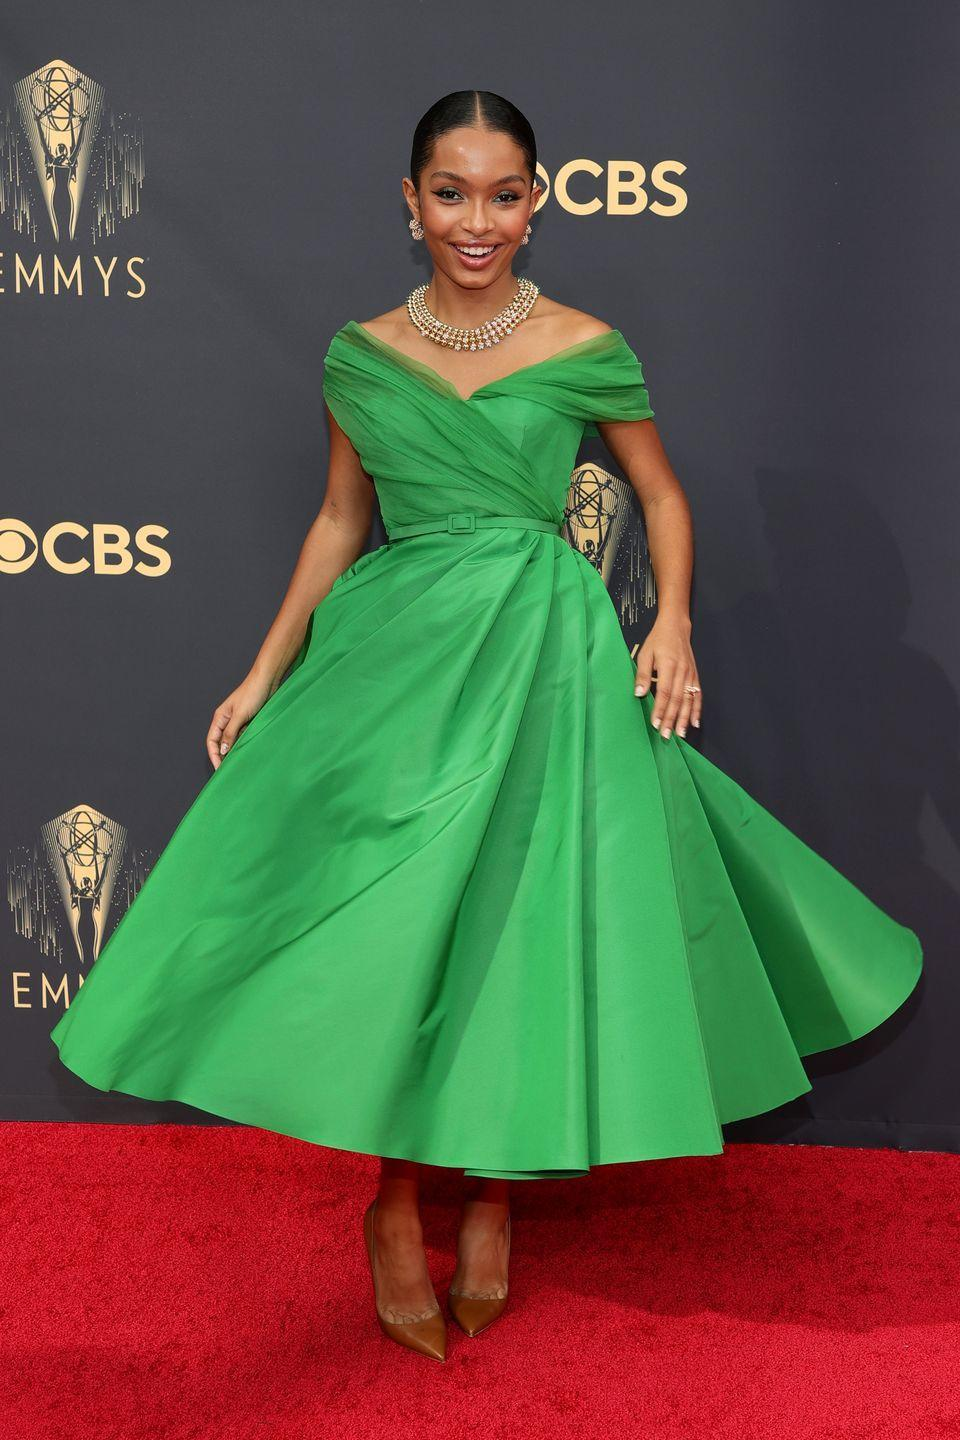 <p>Yara Shahidi looked like a glamorous Fifties film star in an ankle-length, bright green design by Dior. The actress twirled on the red carpet in the timeless design, teaming her look with a chunky necklace and brown pointed court shoes.</p>